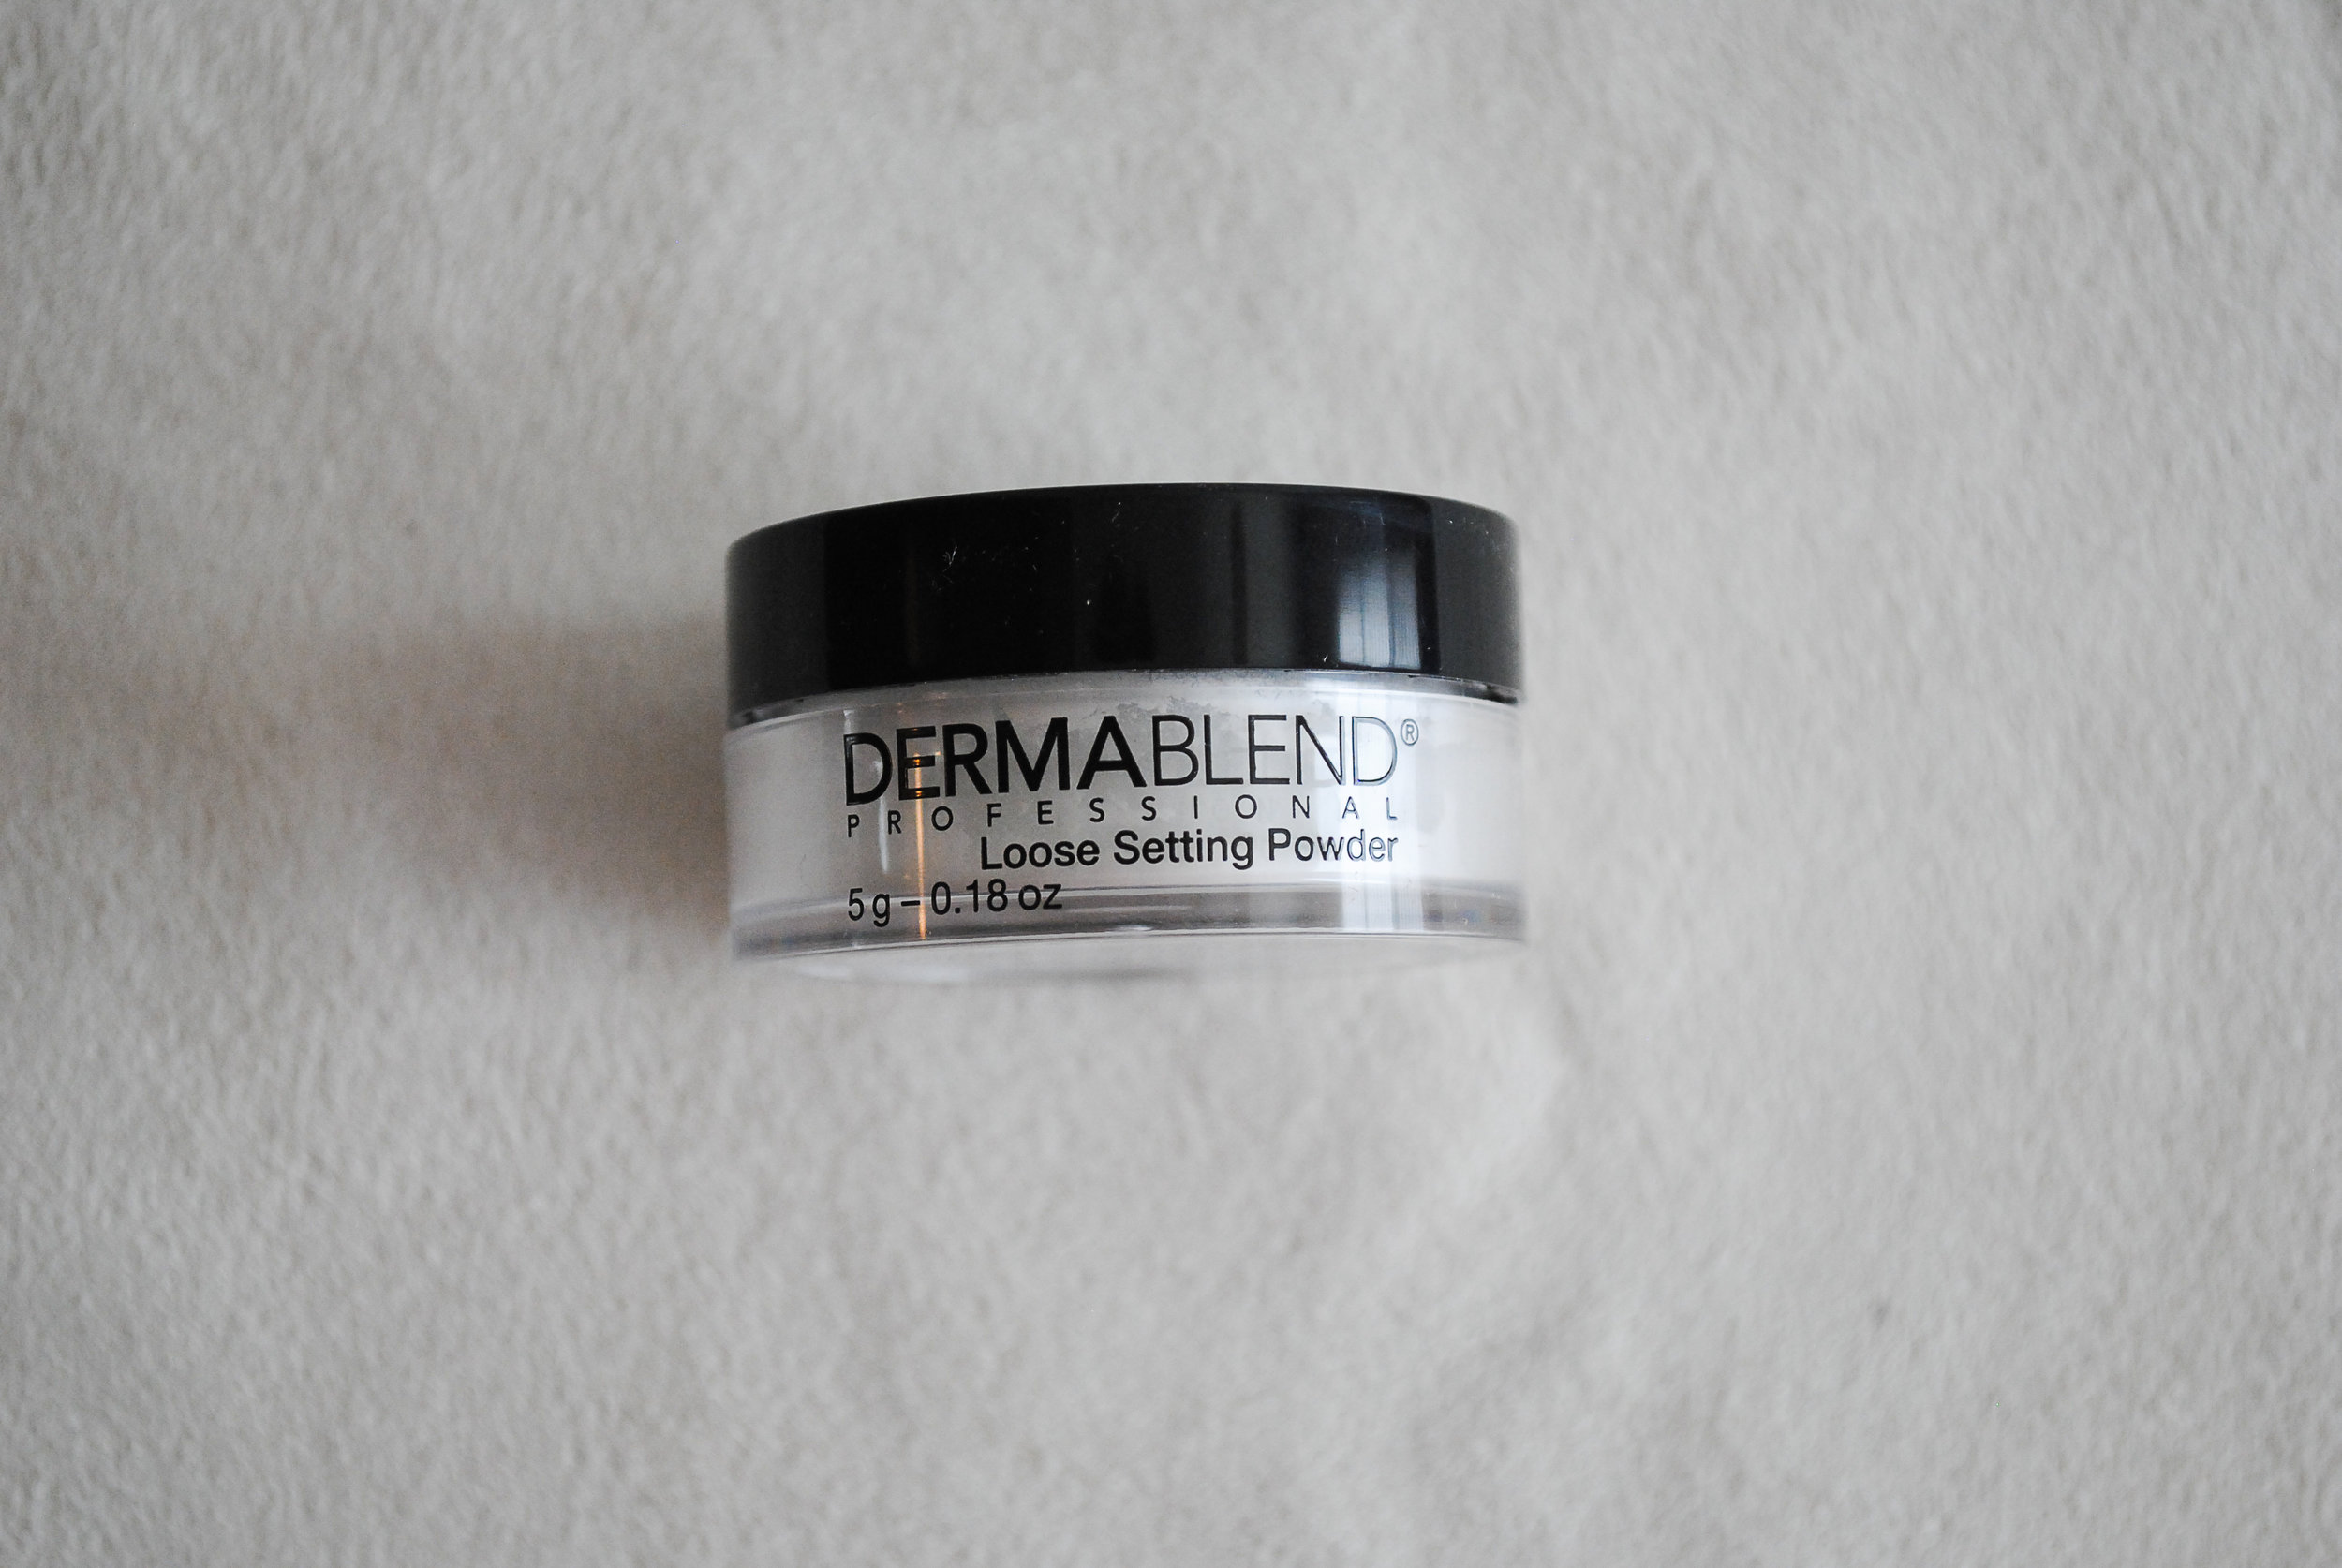 DERMABLEND Loose Setting Powder  What it claims to do: This is loose setting powder that locks down makeup and keeps it smudge and transfer resistant for up to 16 hours.  I'm all for setting powders with combination oily skin, they are a god send for me! My makeup lasts forever with this powder and leaves my makeup looking flawless!